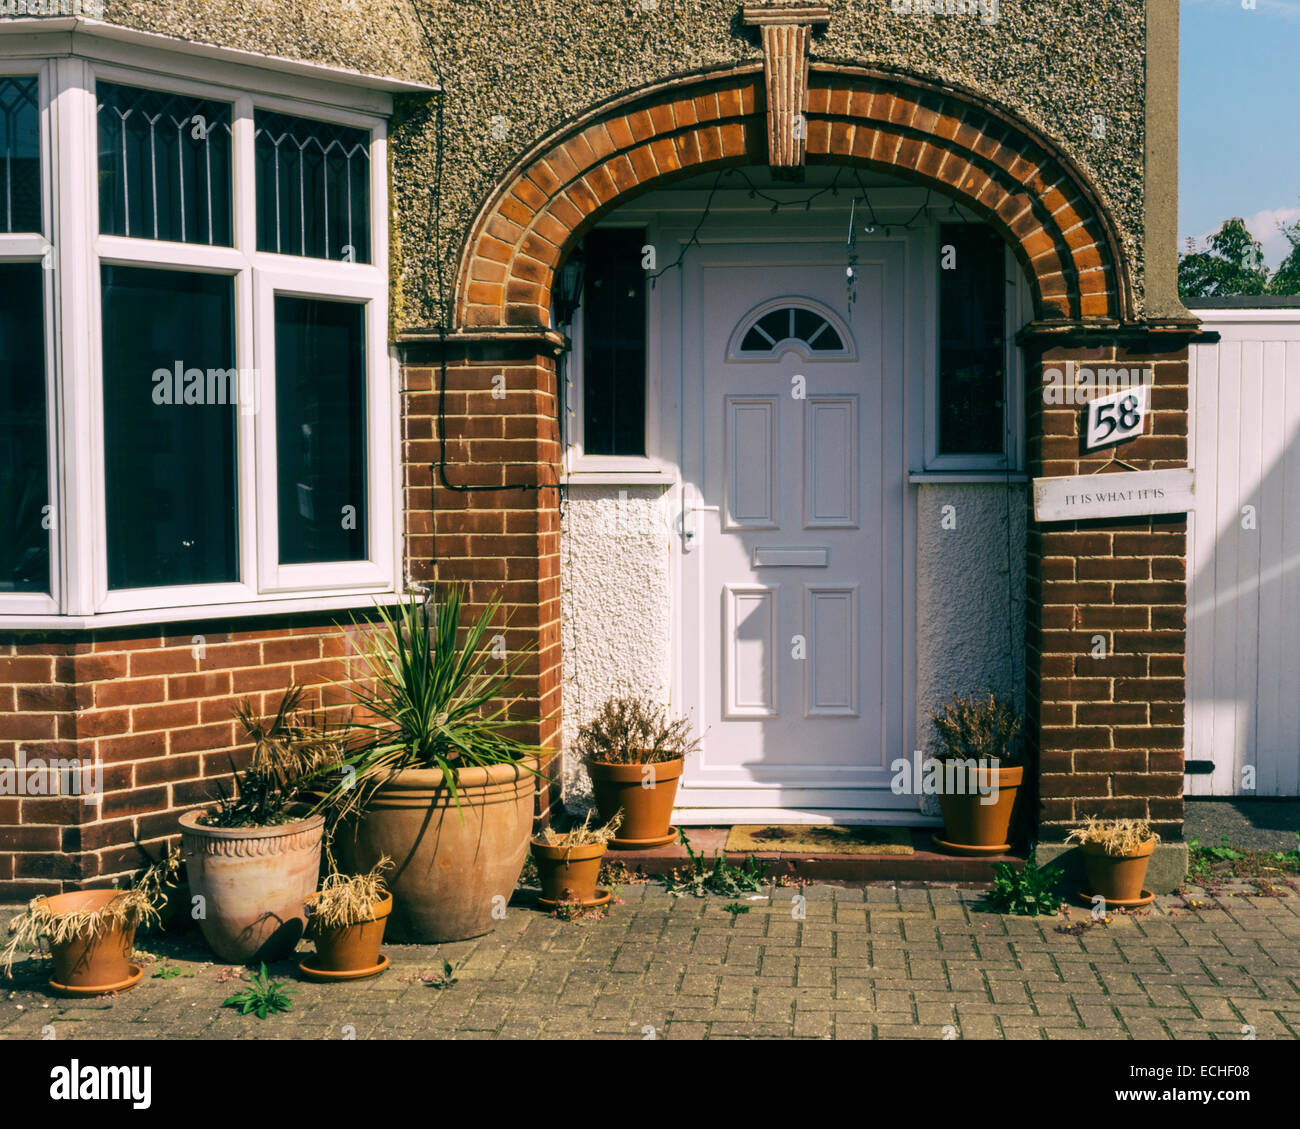 English house exterior - pebble-dash, brick, white door and dead plants in pots - 'it is what it is' sign - Stock Image